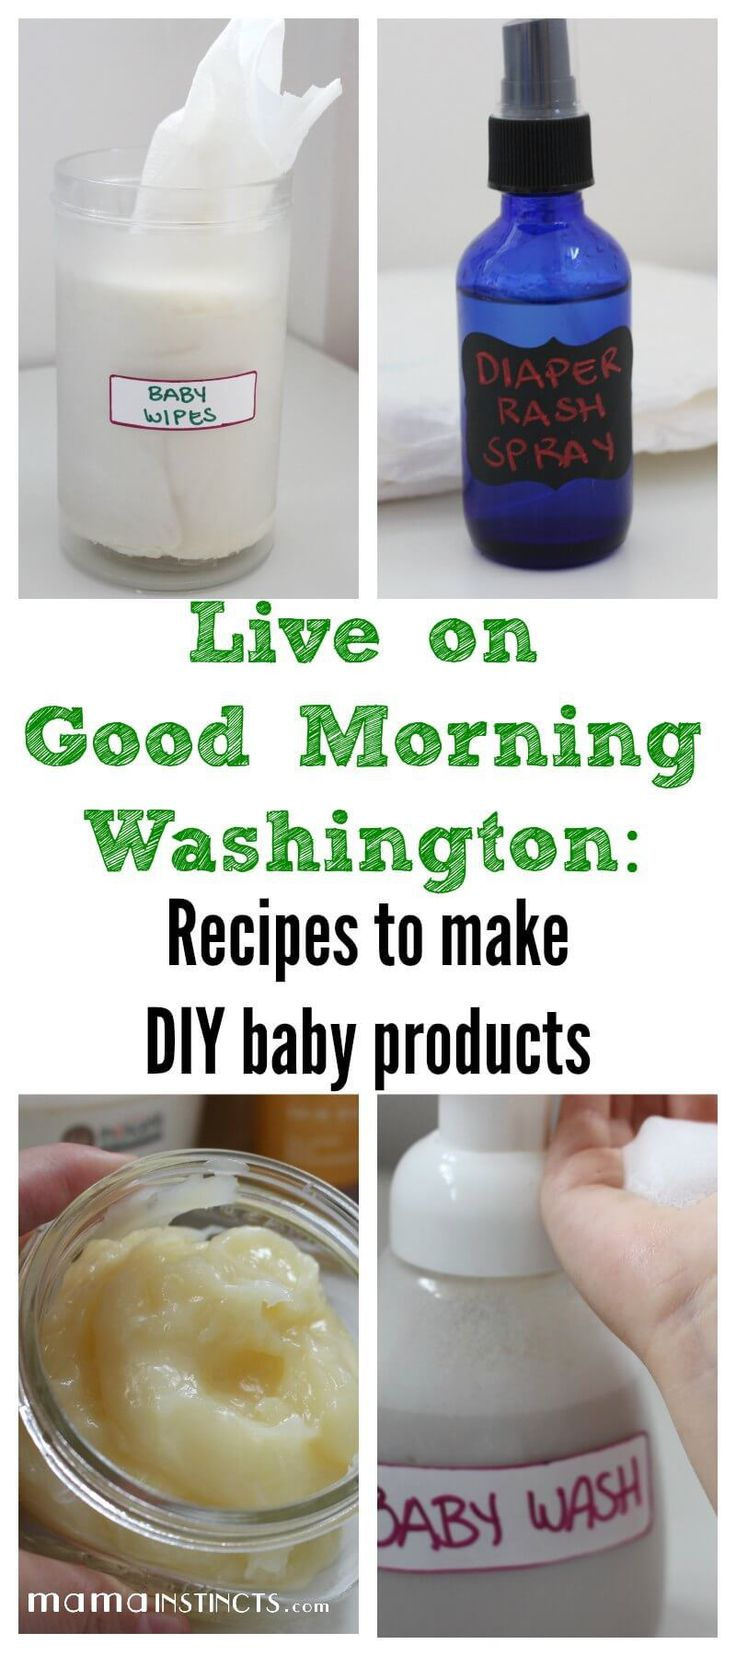 4 Recipes to DIY Make Baby Products Baby lotion, Diaper